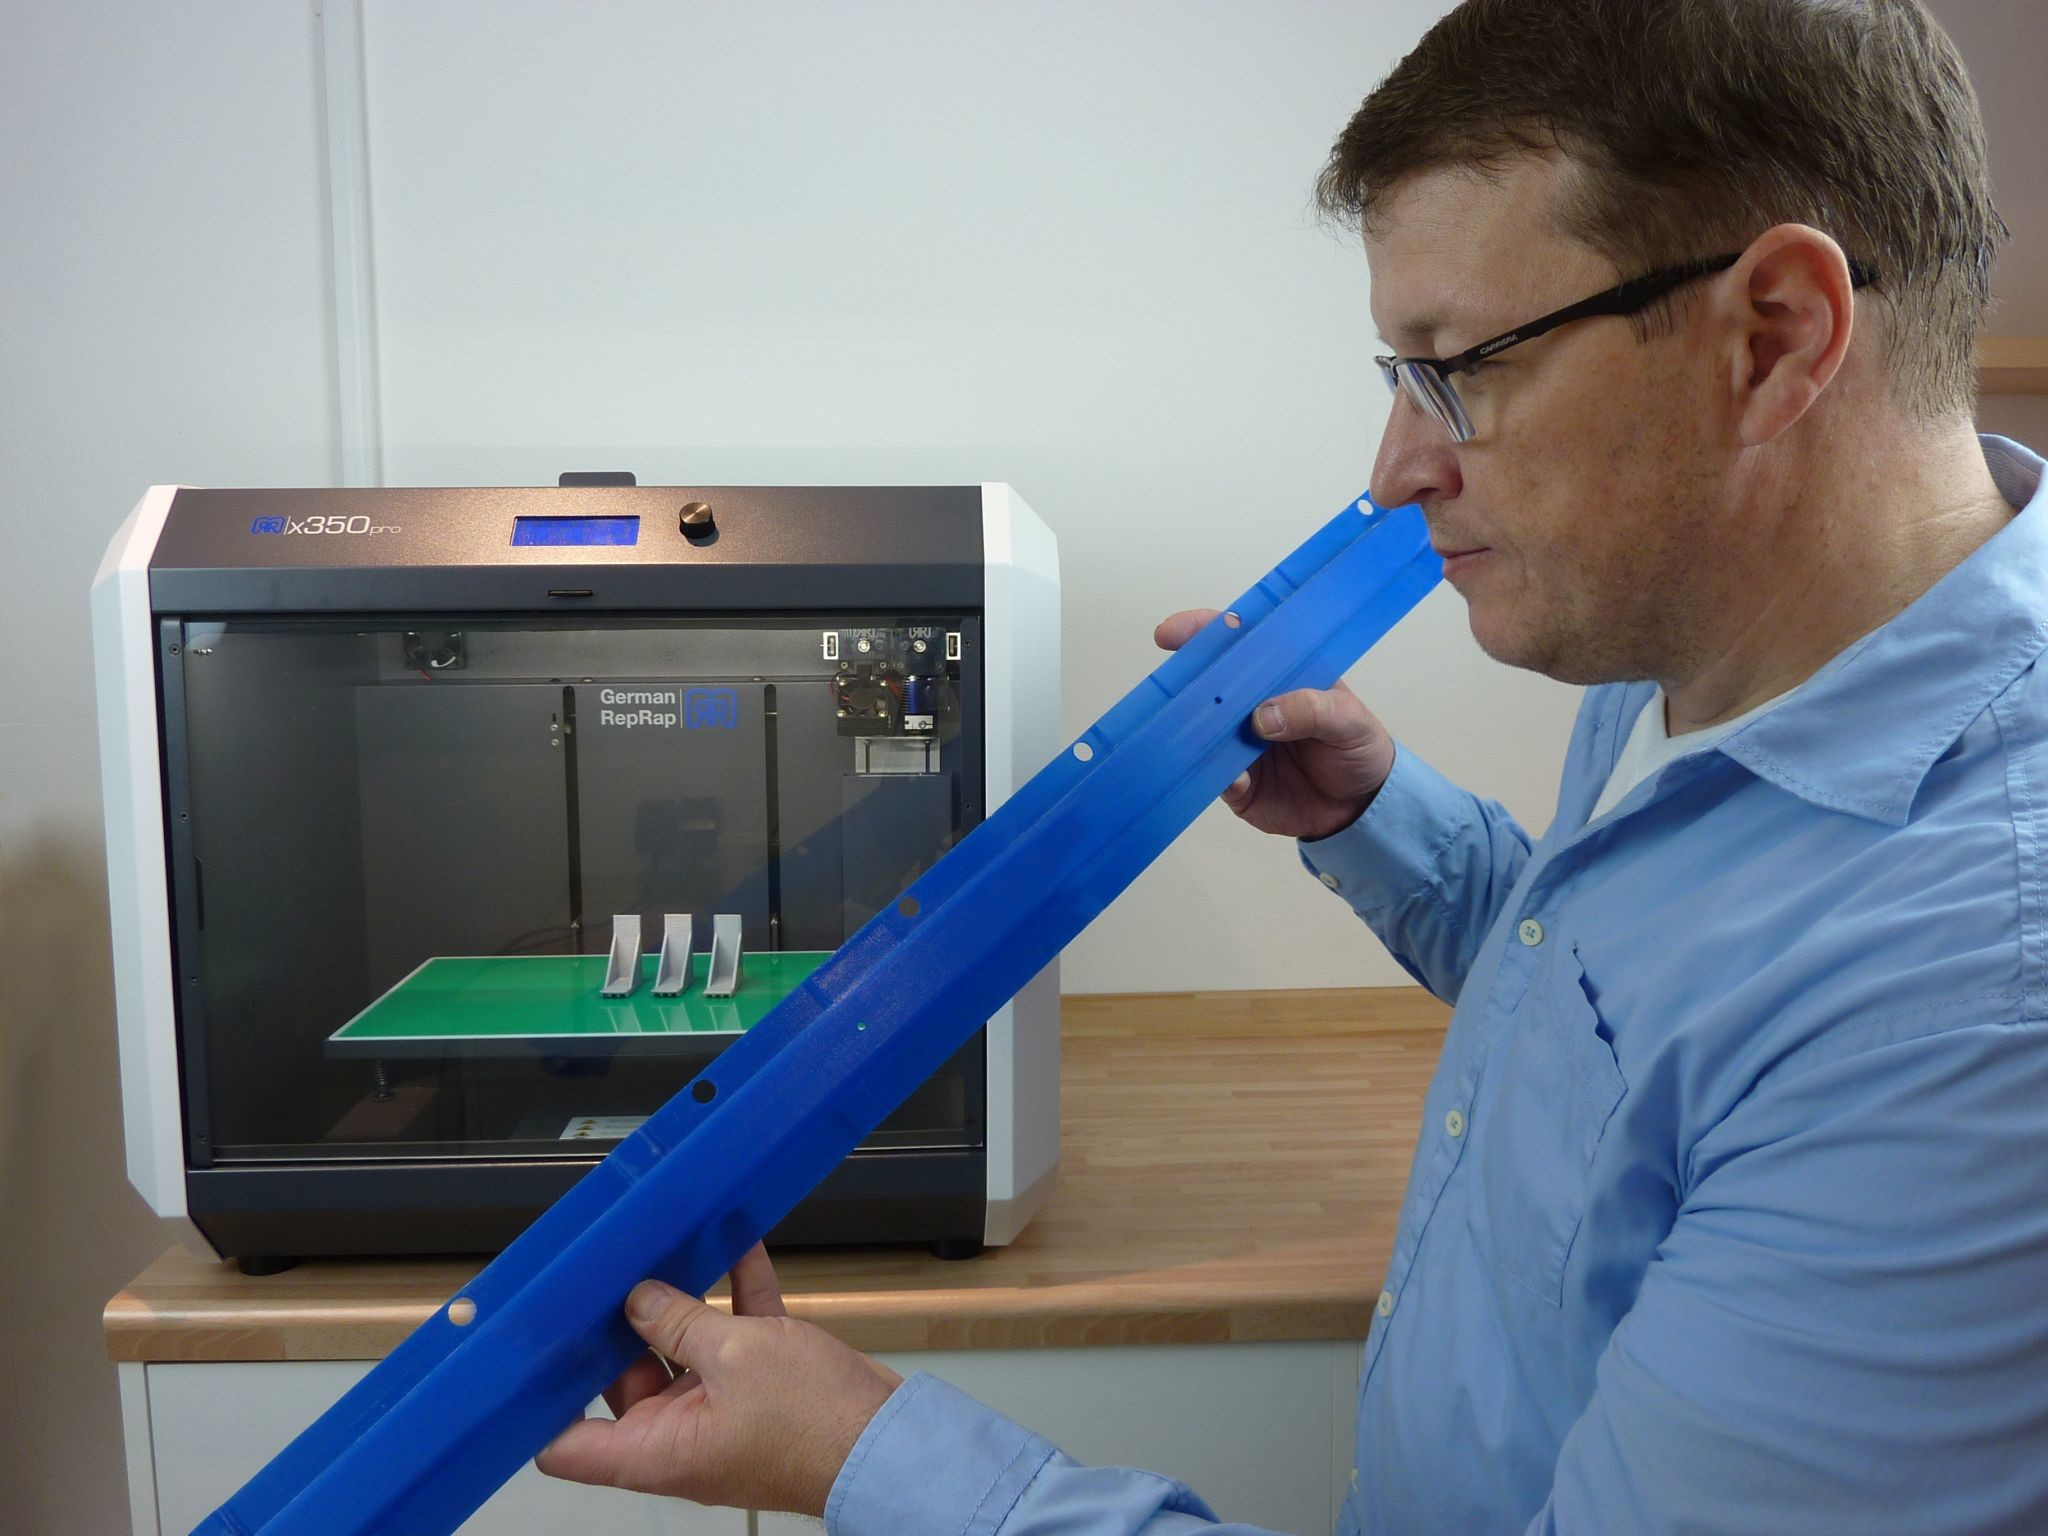 Inspecting a 3D printed part for the automotive industry. Photo via German RepRap.